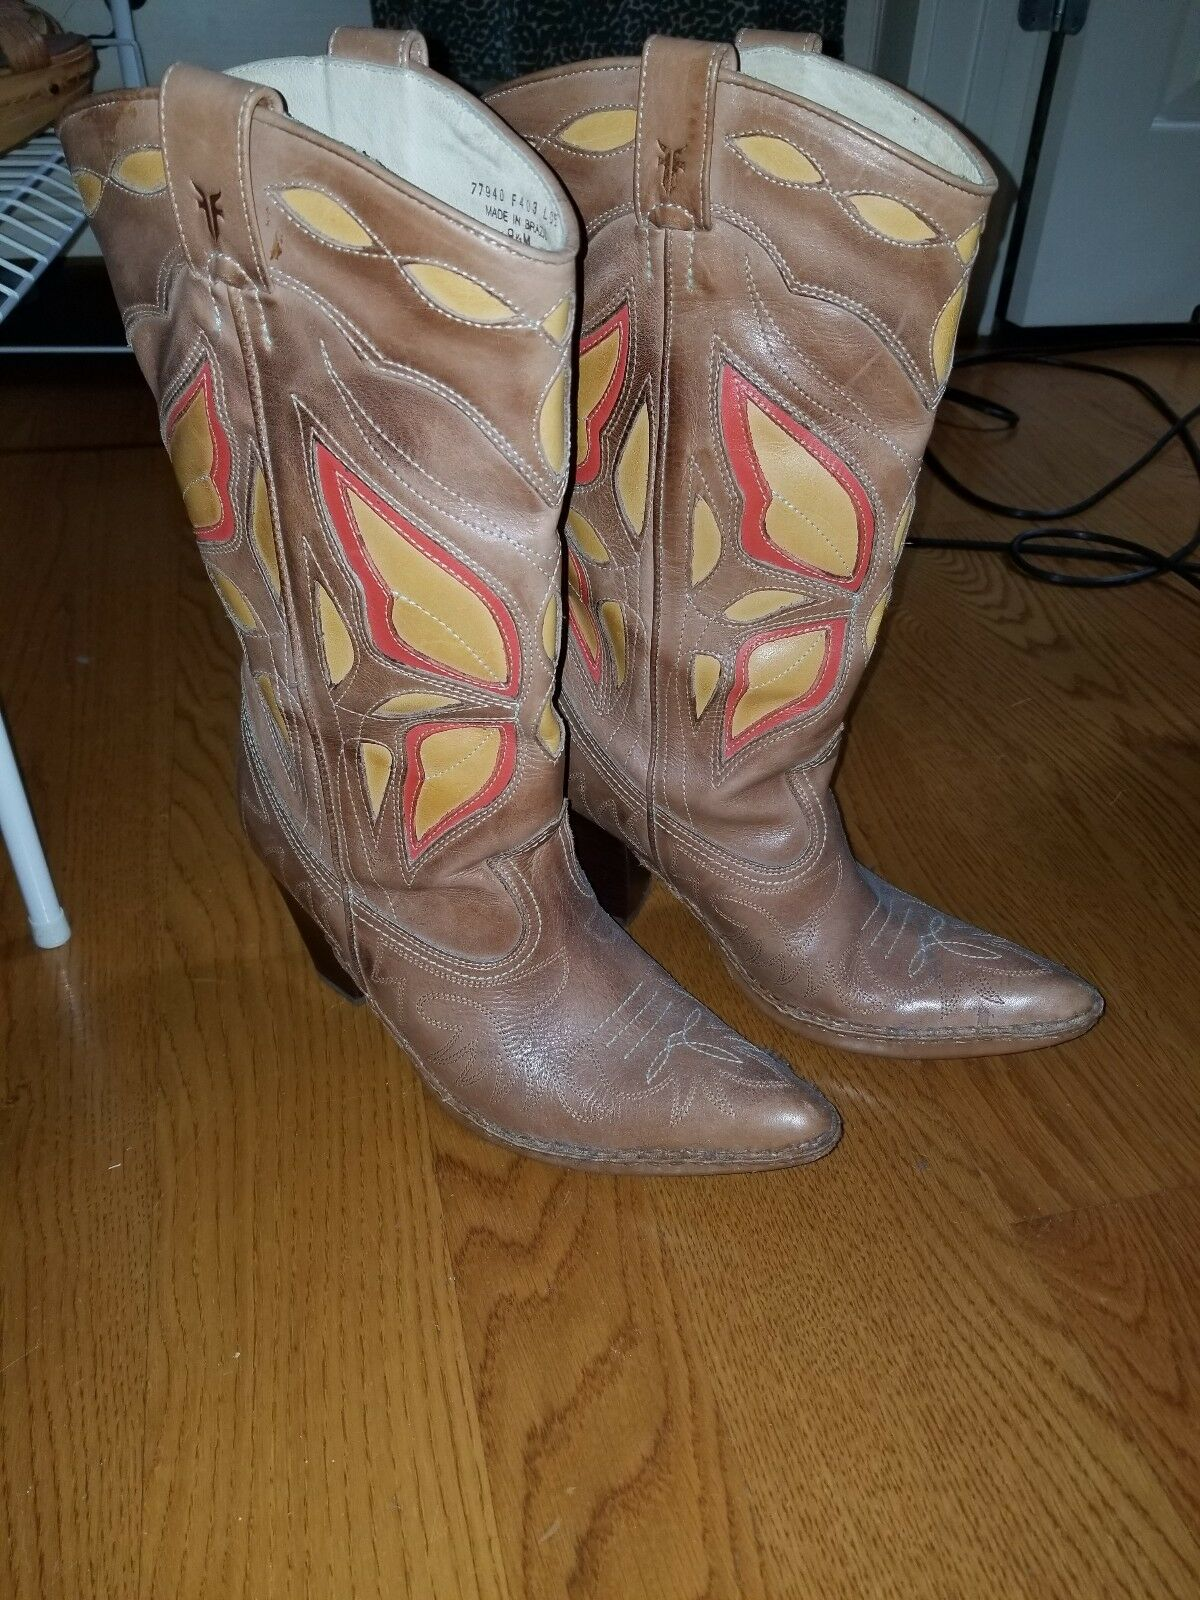 Frye Phoenix Butterfly leather leather leather boots - size 9.5M 778cd1